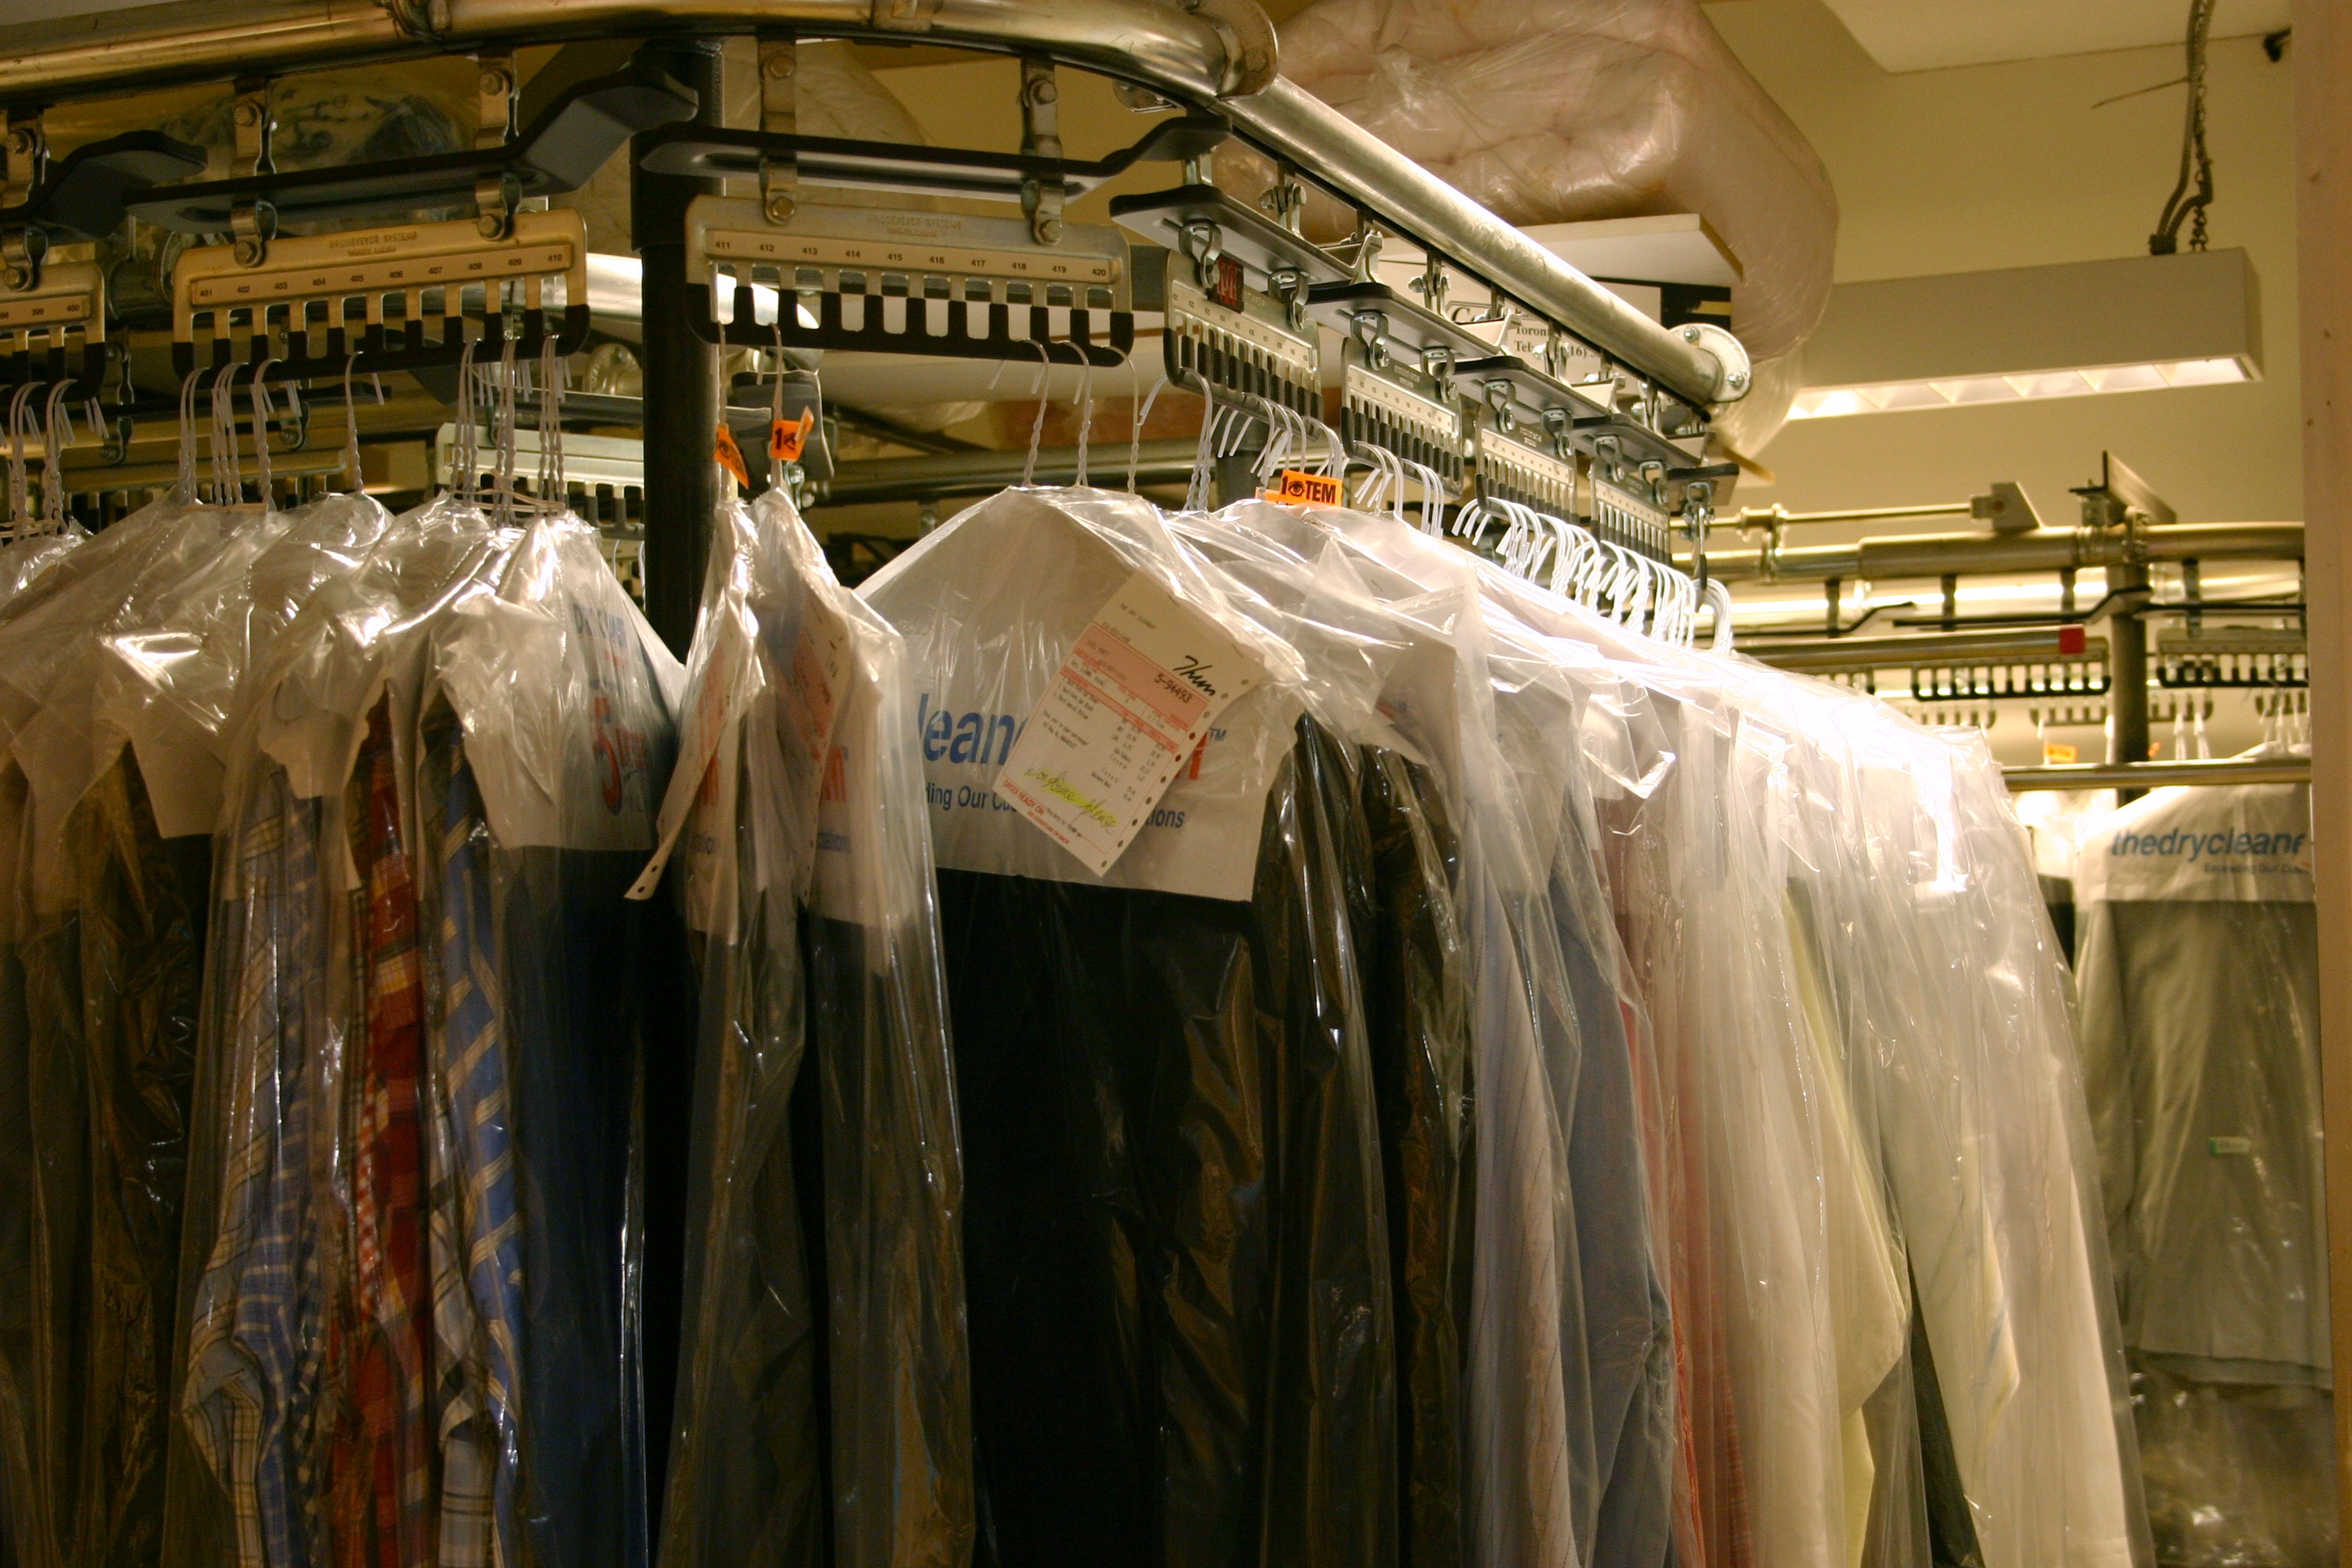 dry cleaning pick up & delivery east islip